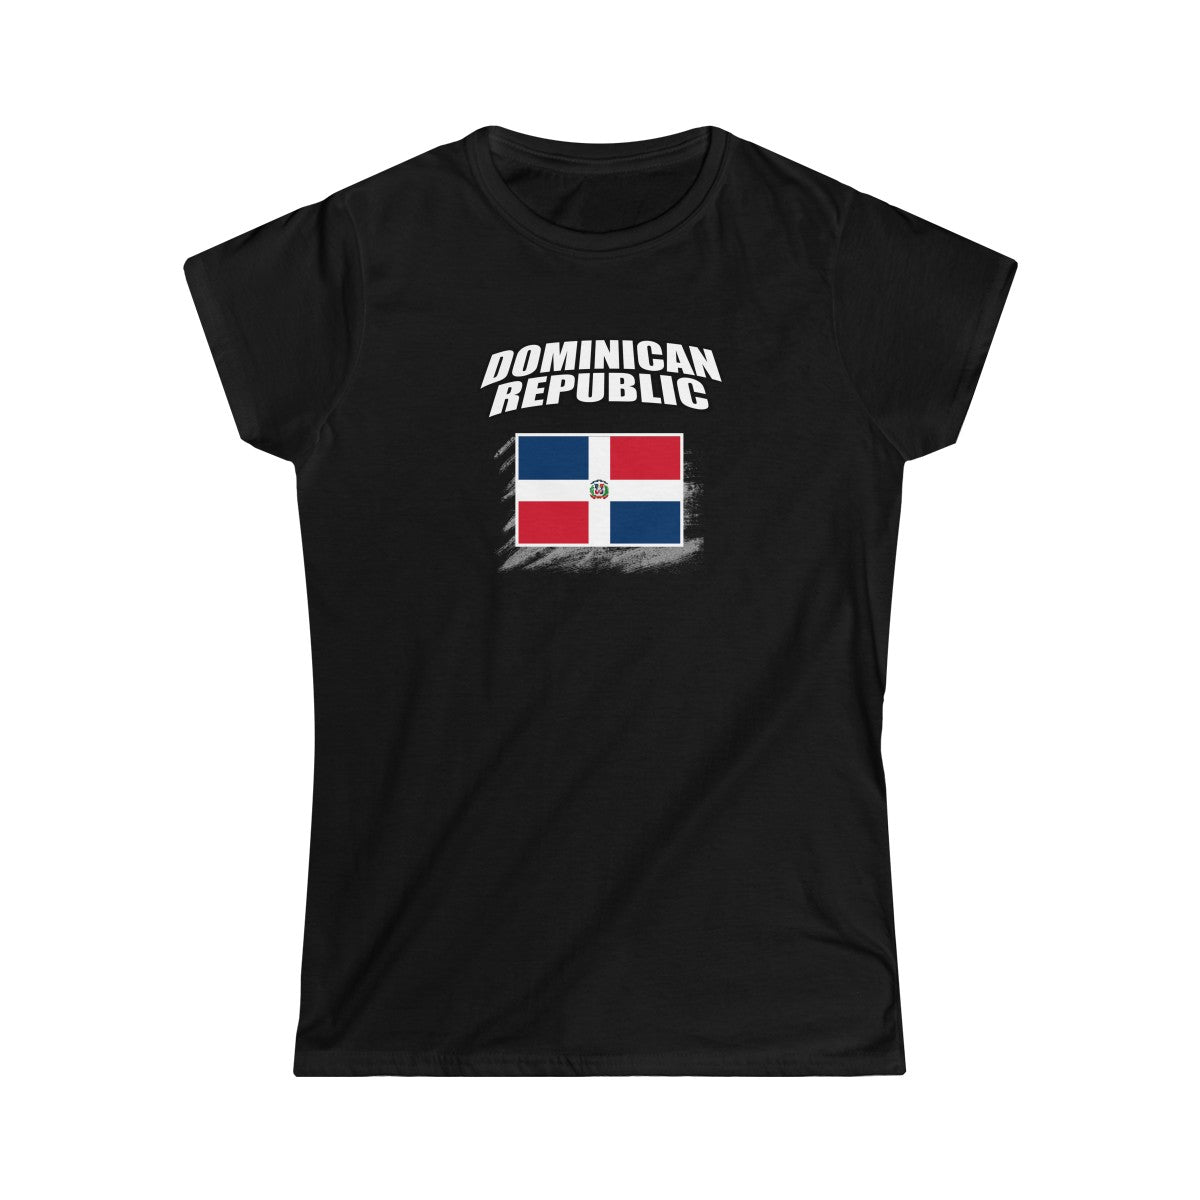 Dominican Women's Softstyle Tee - Camiseta Softstyle de Mujer